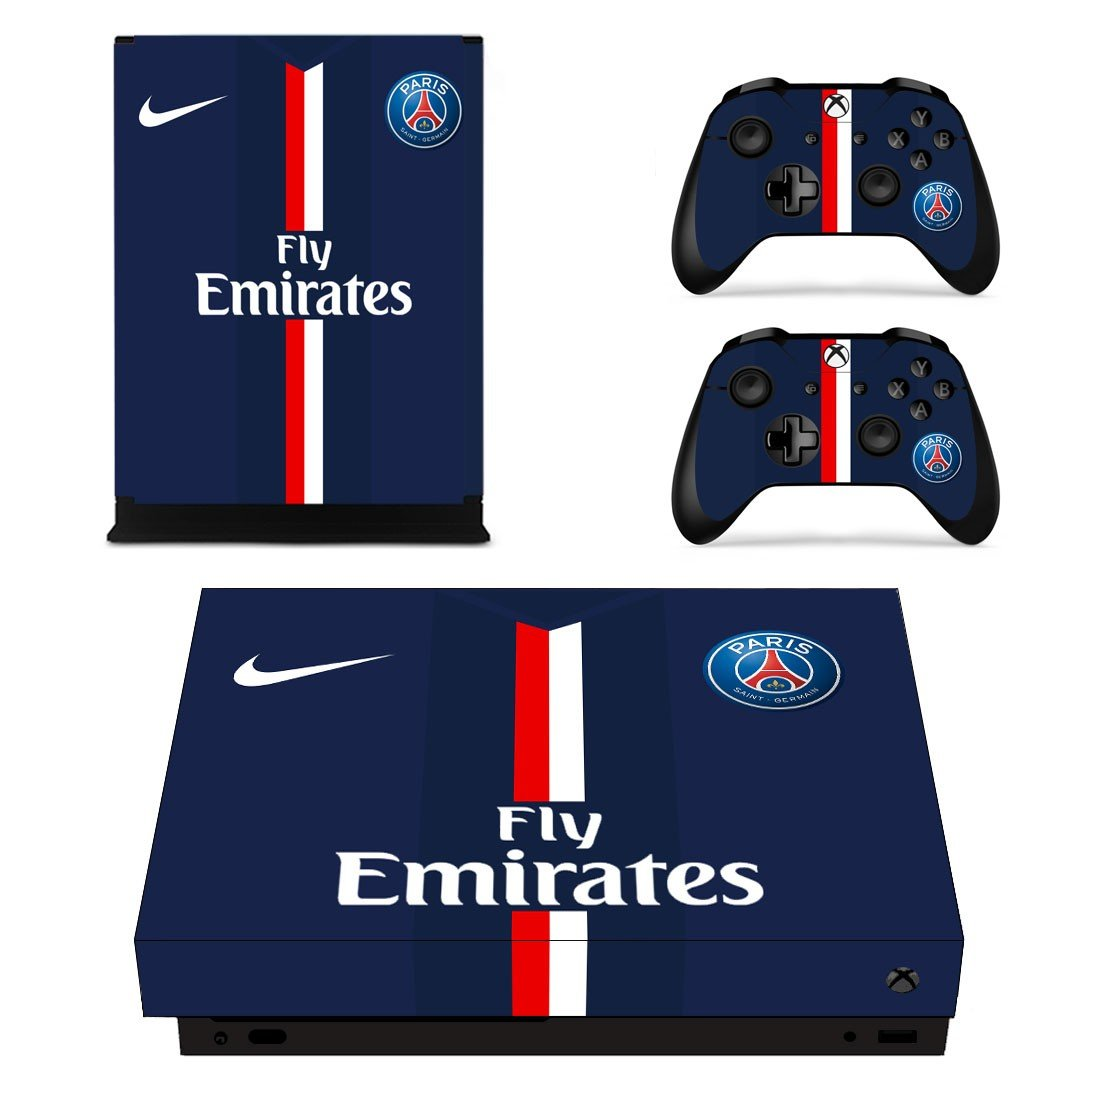 Fly Emirates decal skin sticker for Xbox One X console and controllers